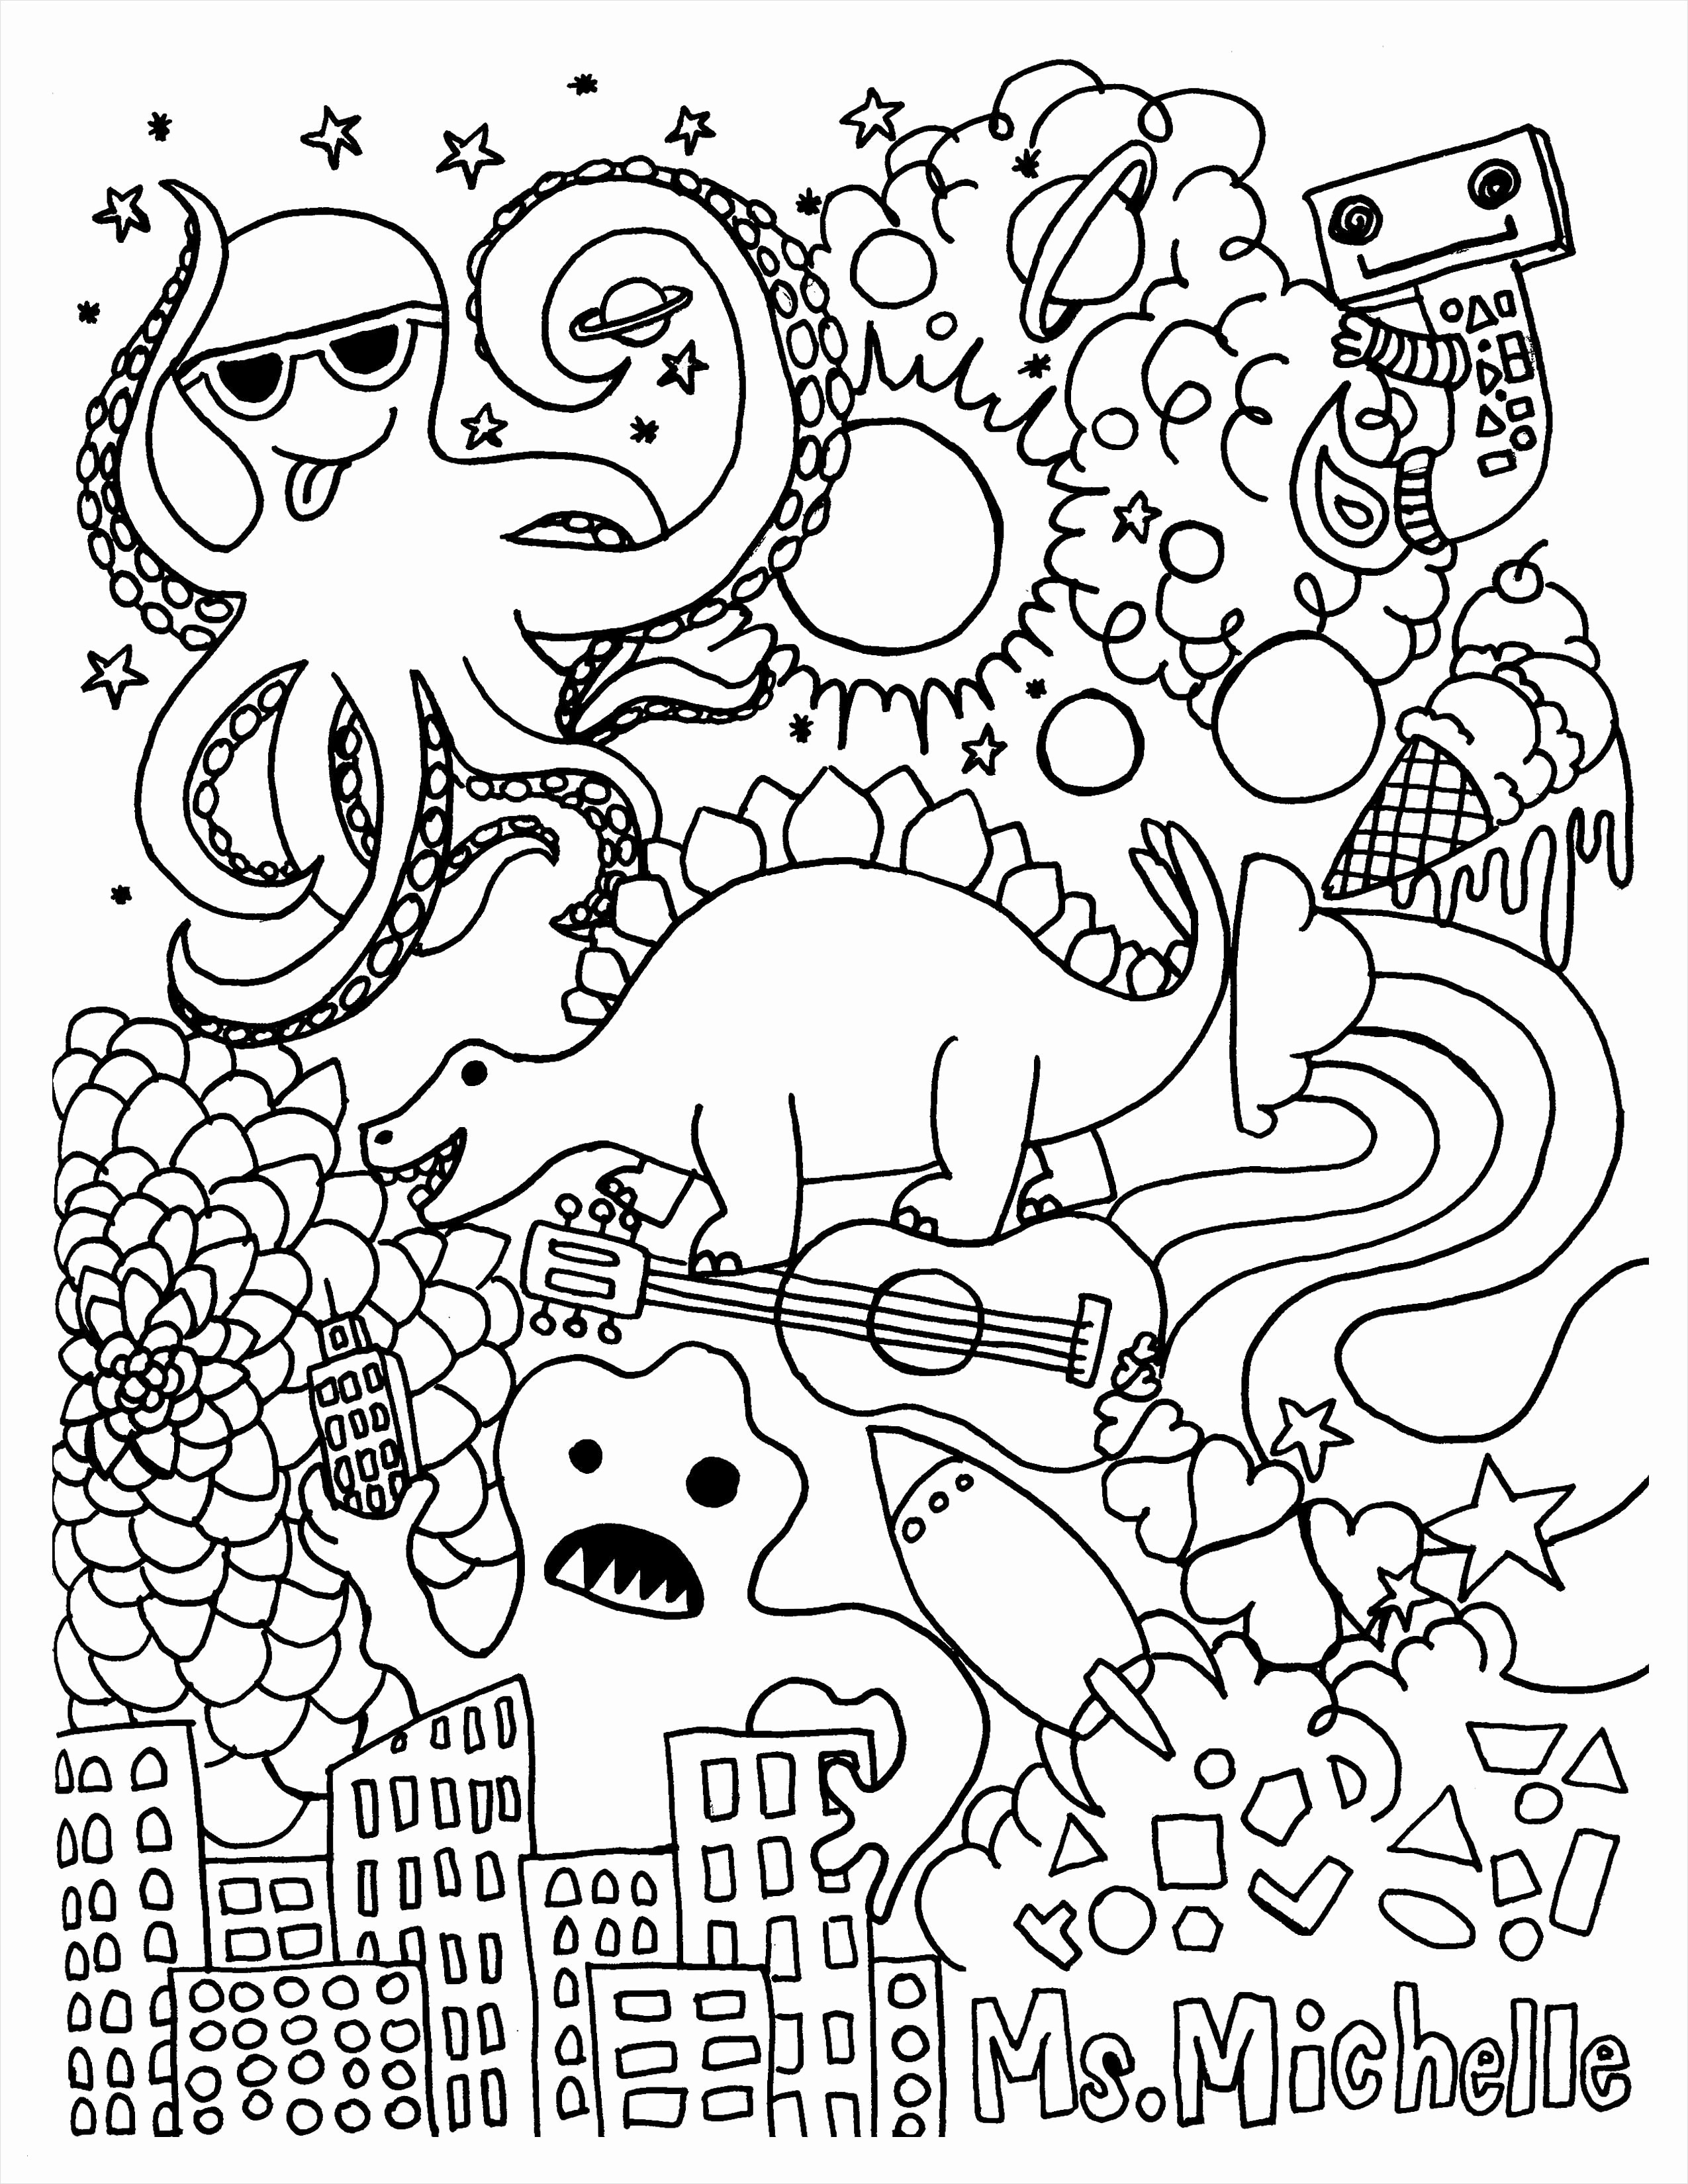 coloring pages 4th of july printable Collection-Free Shape Coloring Pages Coloring Pages 4th July Printable Awesome Coloring Pages 4th July 15-q